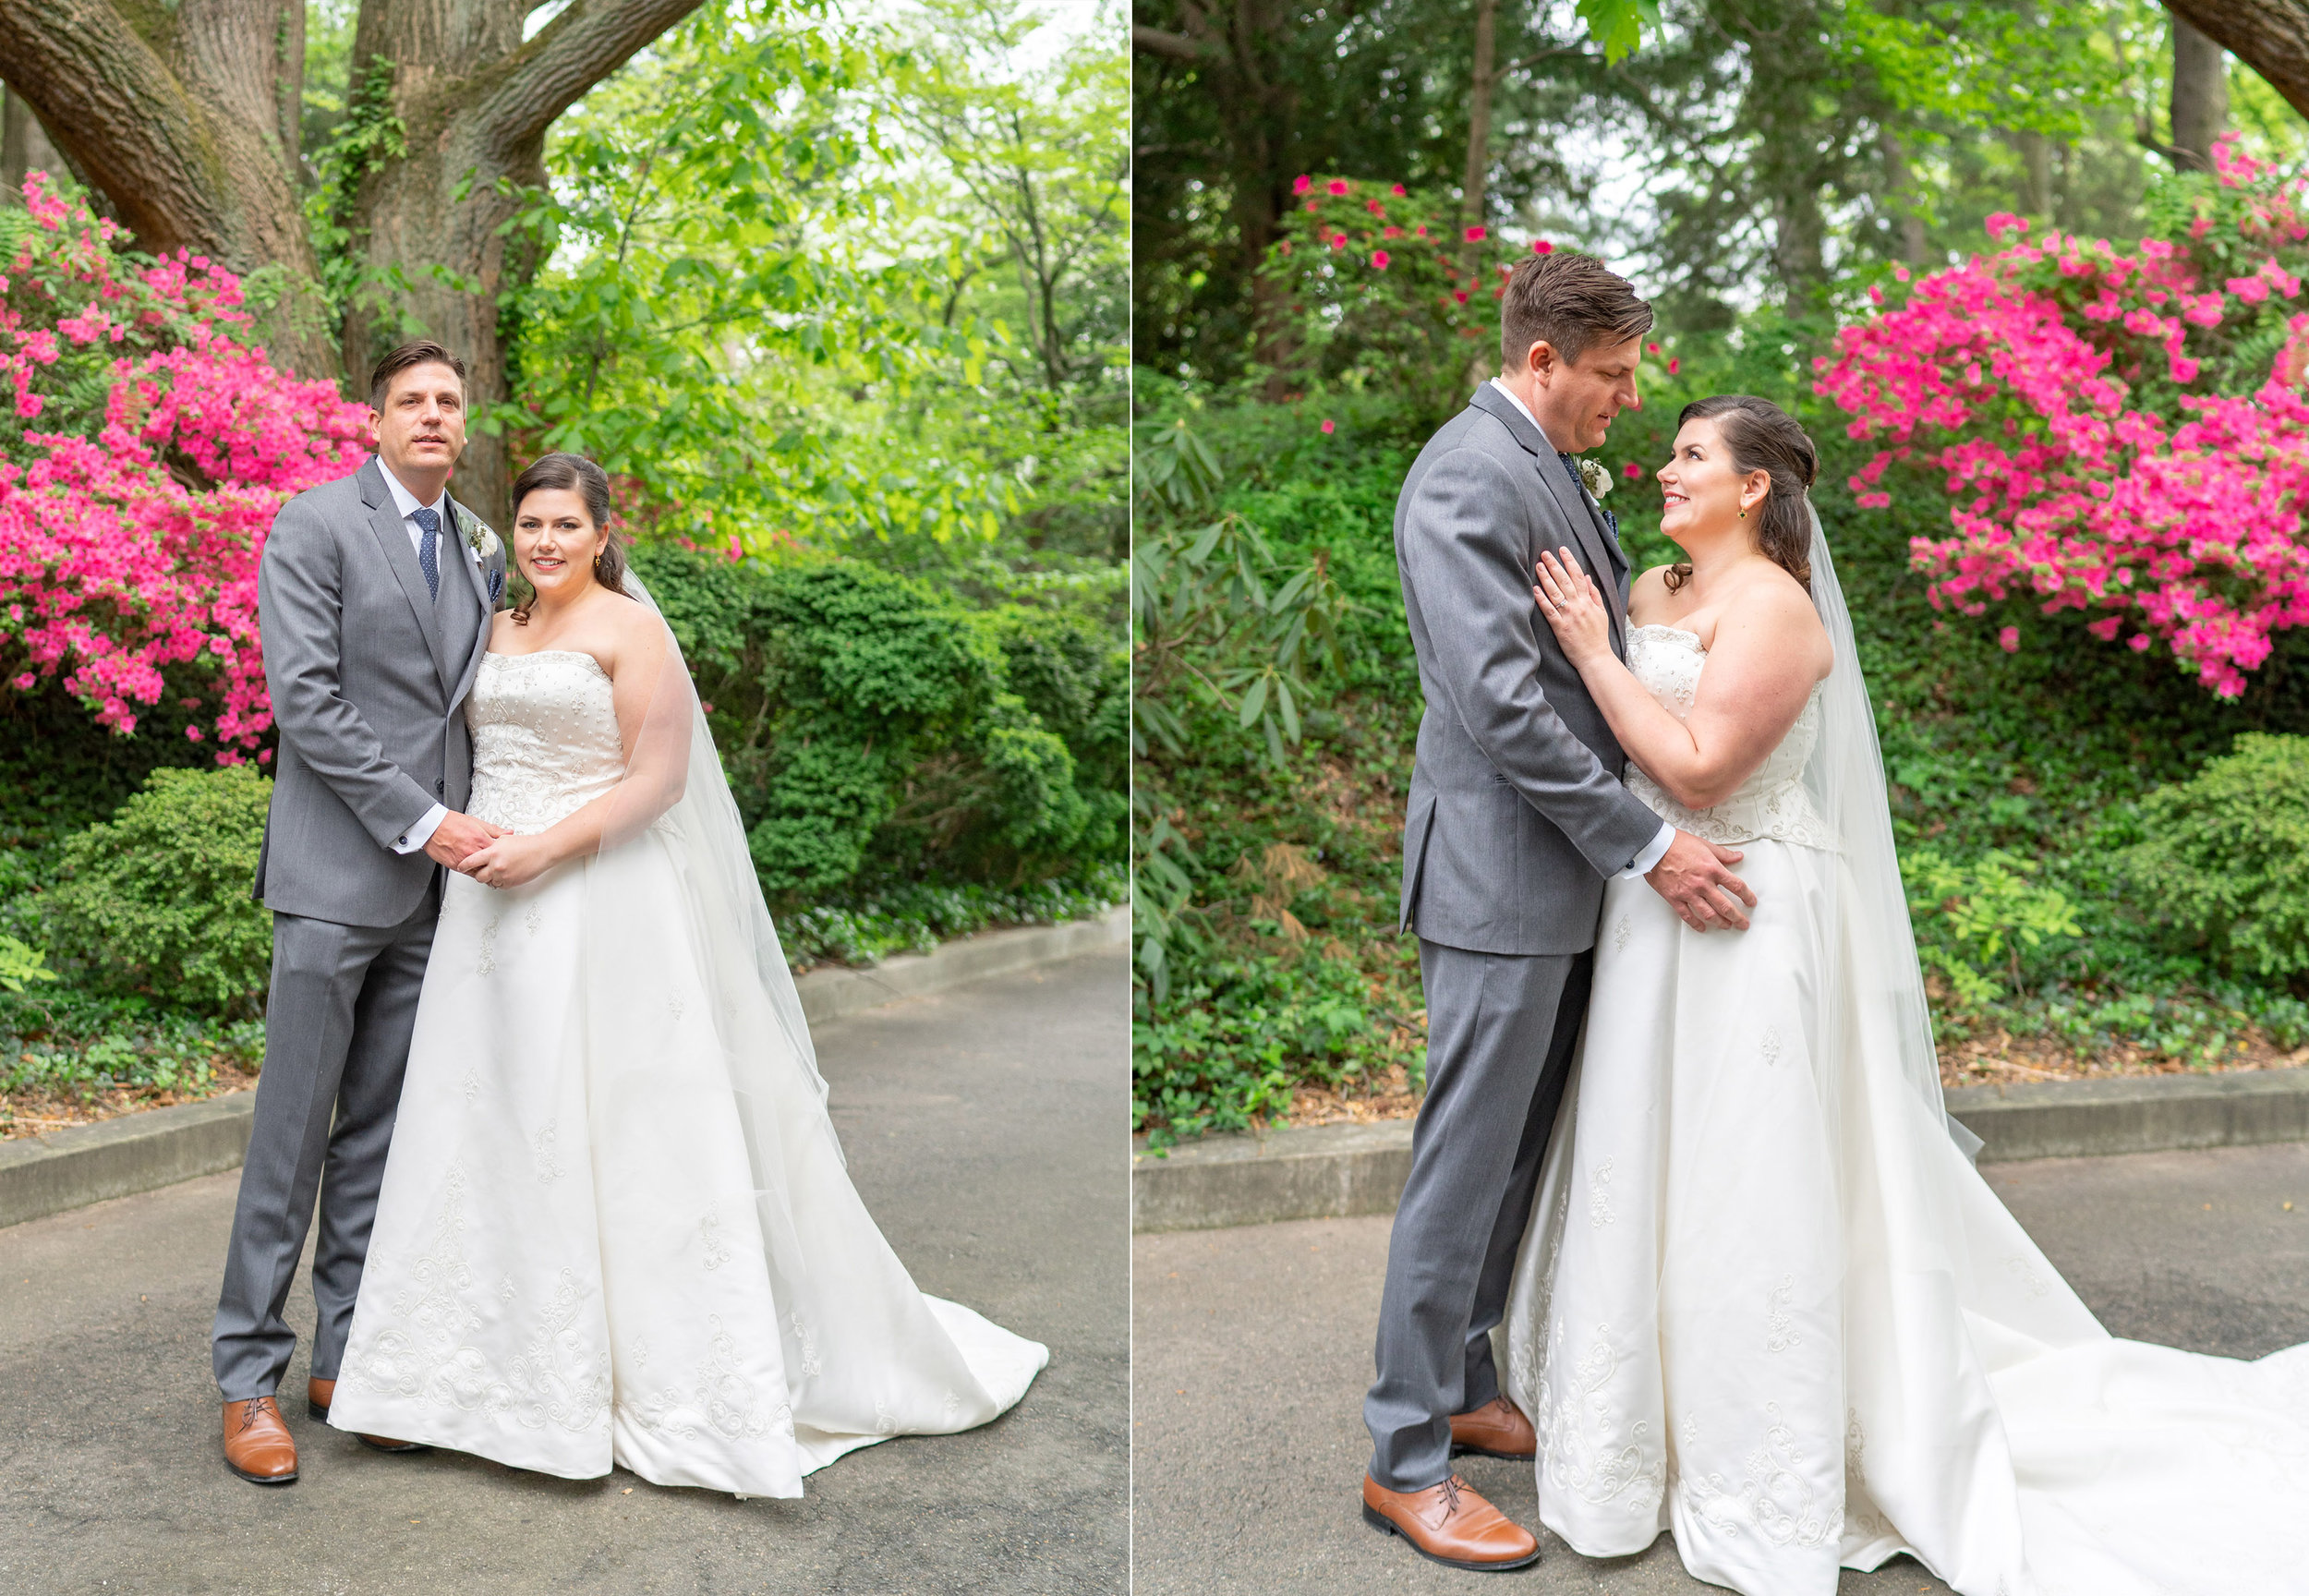 Bride and groom portraits at summer wedding at Hendry House